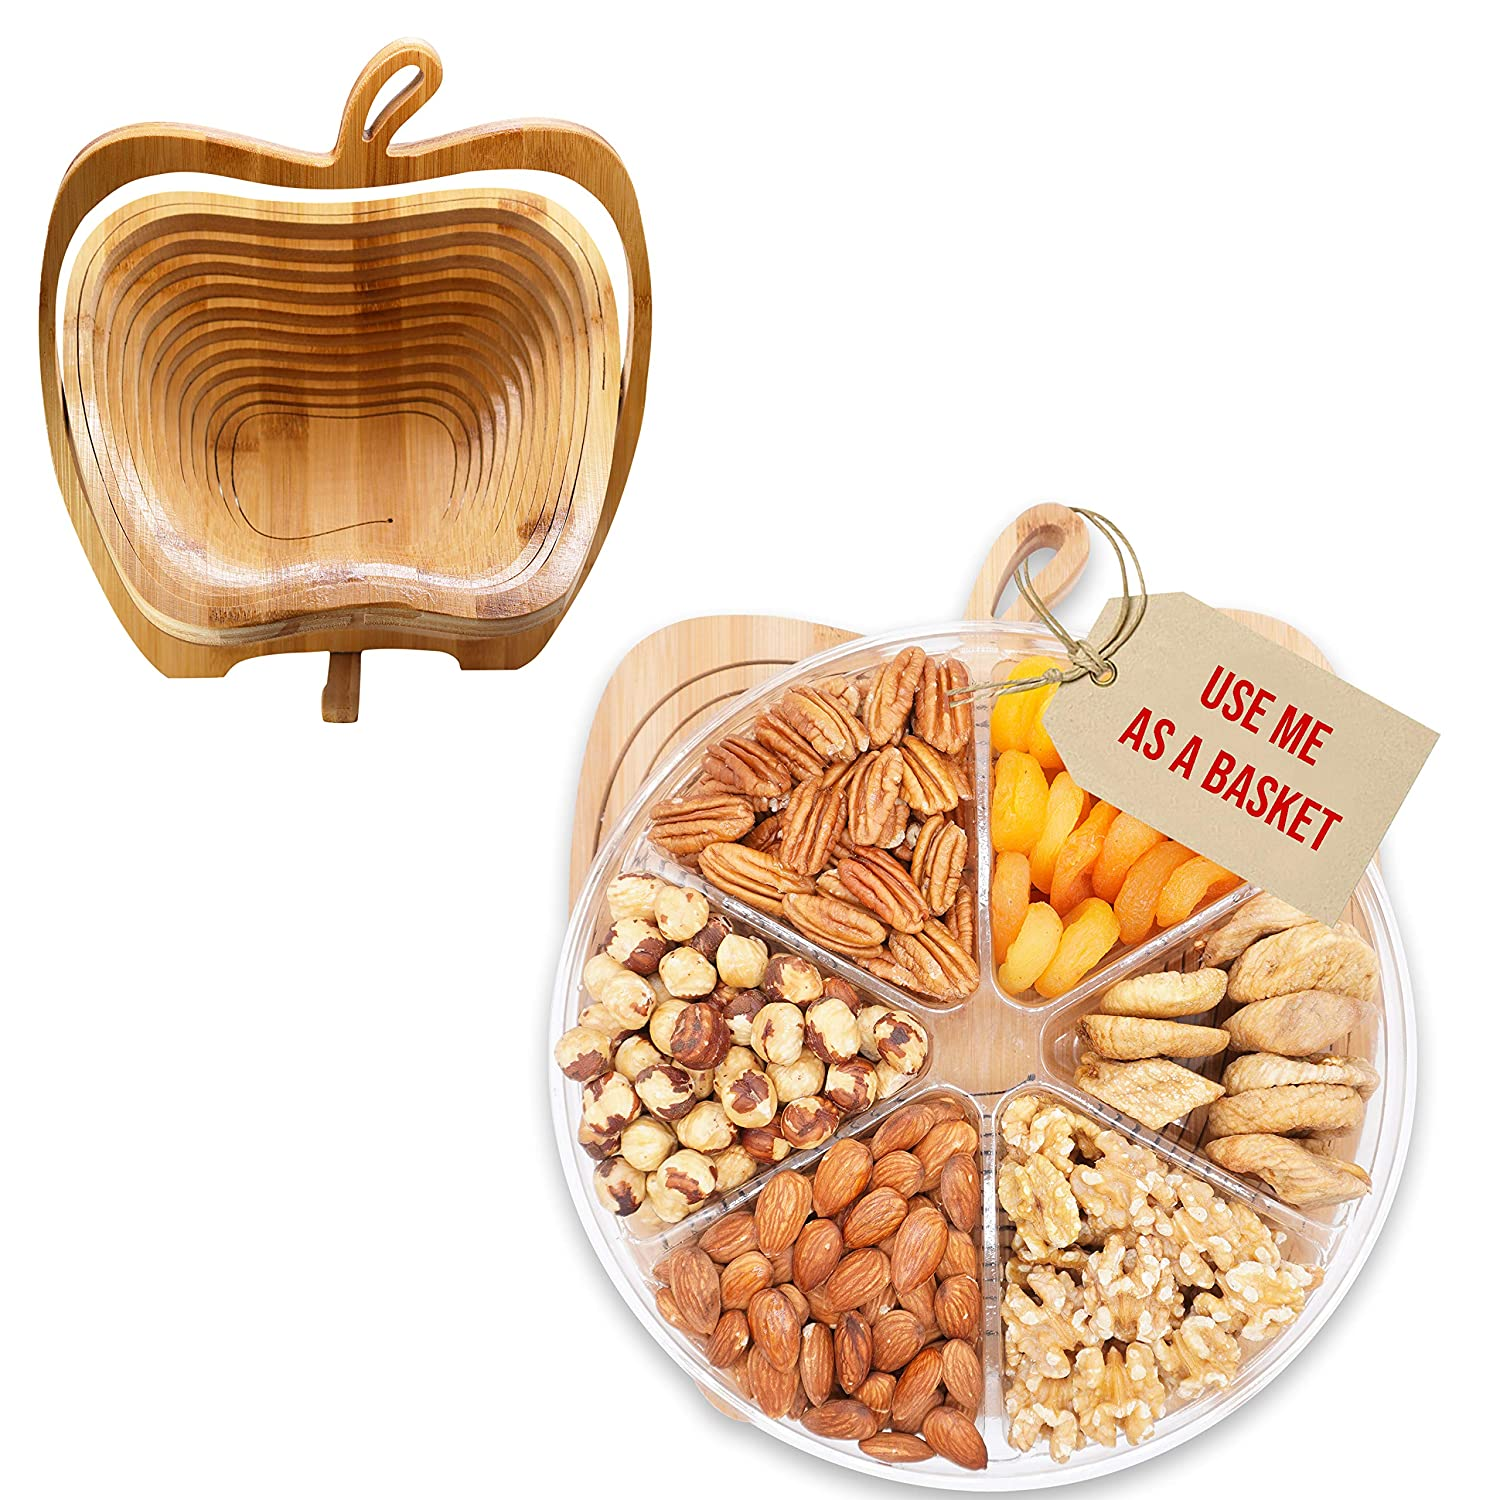 Secret Garden`s Dried Fruit and Nuts Gourmet Food Gift Baskets Turns into Basket Healthy Fresh Gift For Thanksgiving, Mothers & Fathers Day, Christmas, Birthday, Easter(6Mix)